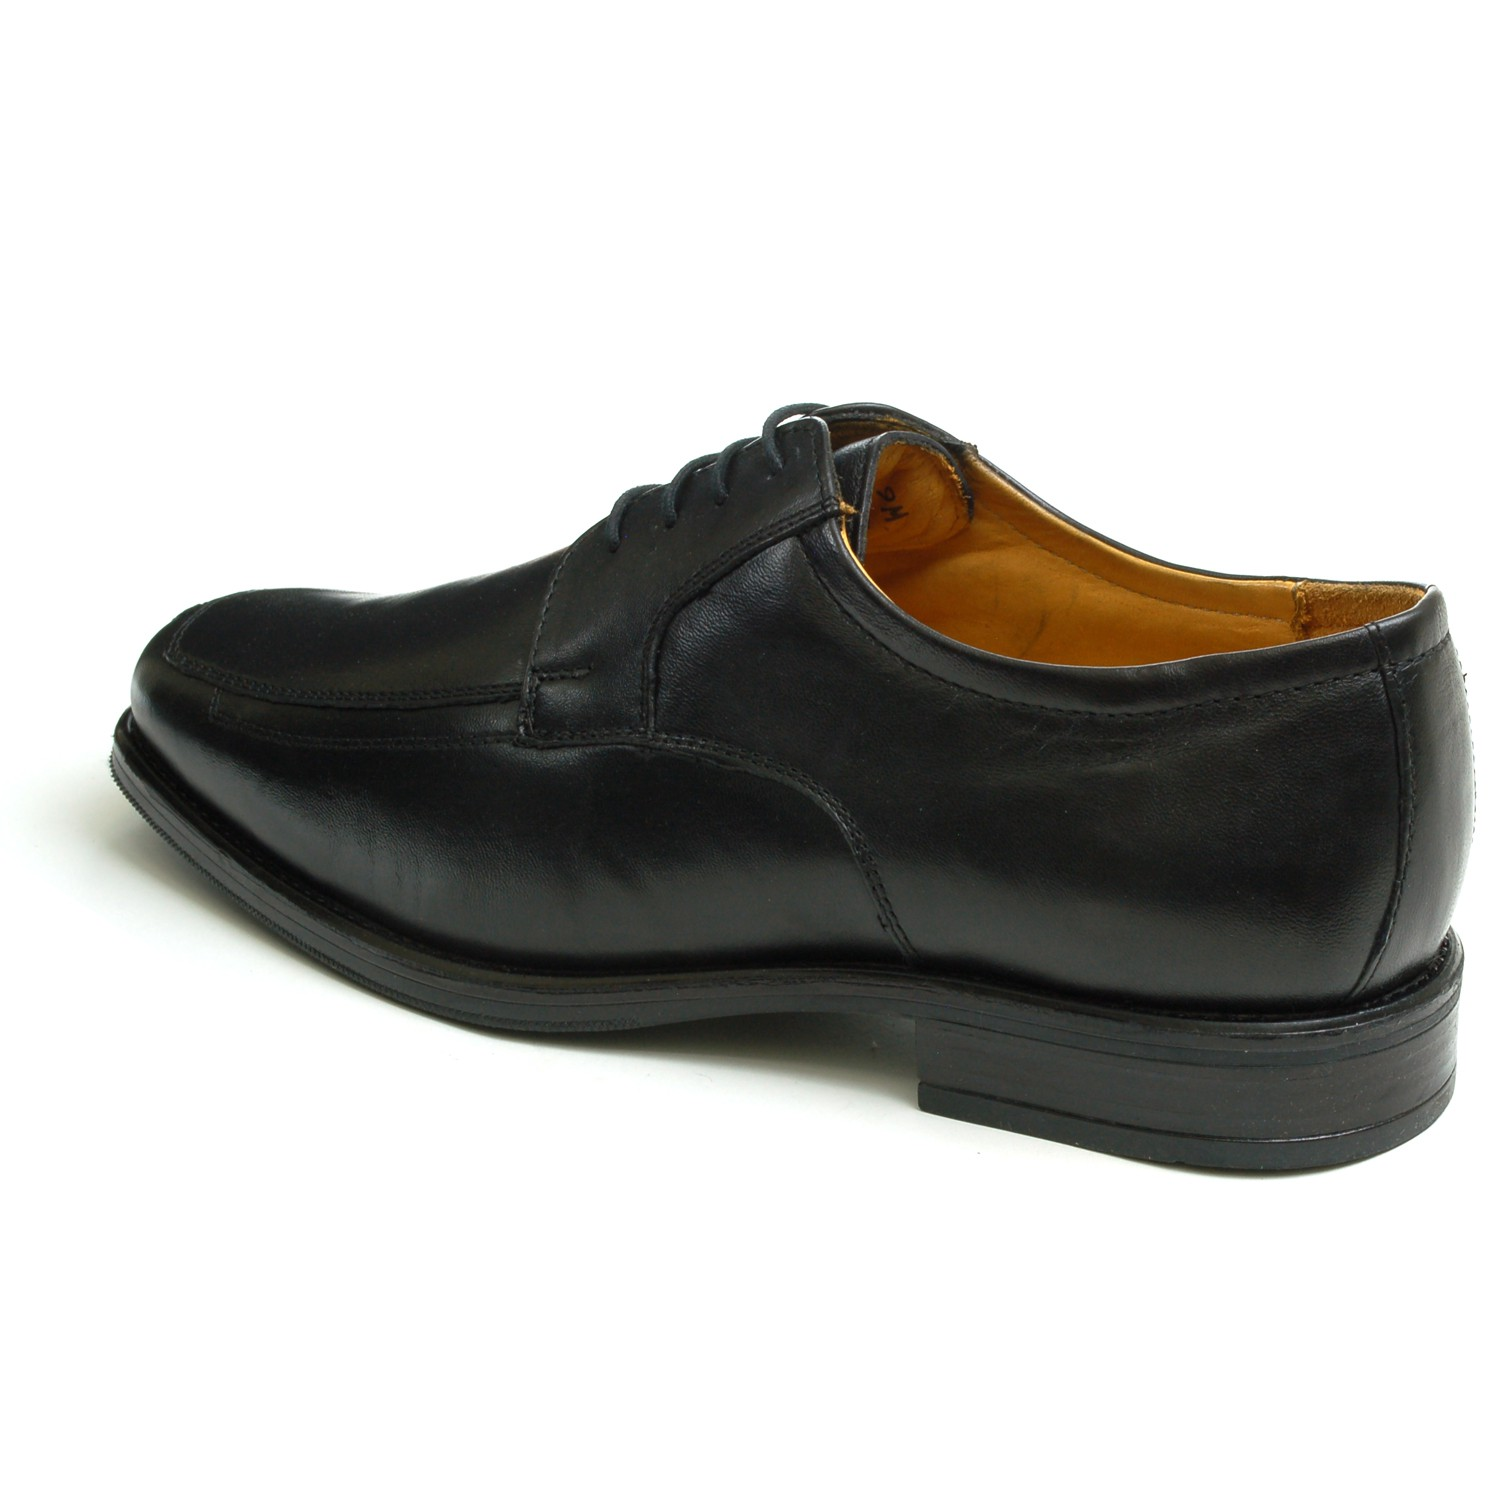 Mens-Lace-Up-Oxfords-Dress-Shoes-Genuine-Leather-Moc-Toe-Giorgio-Brutini-Padded thumbnail 11